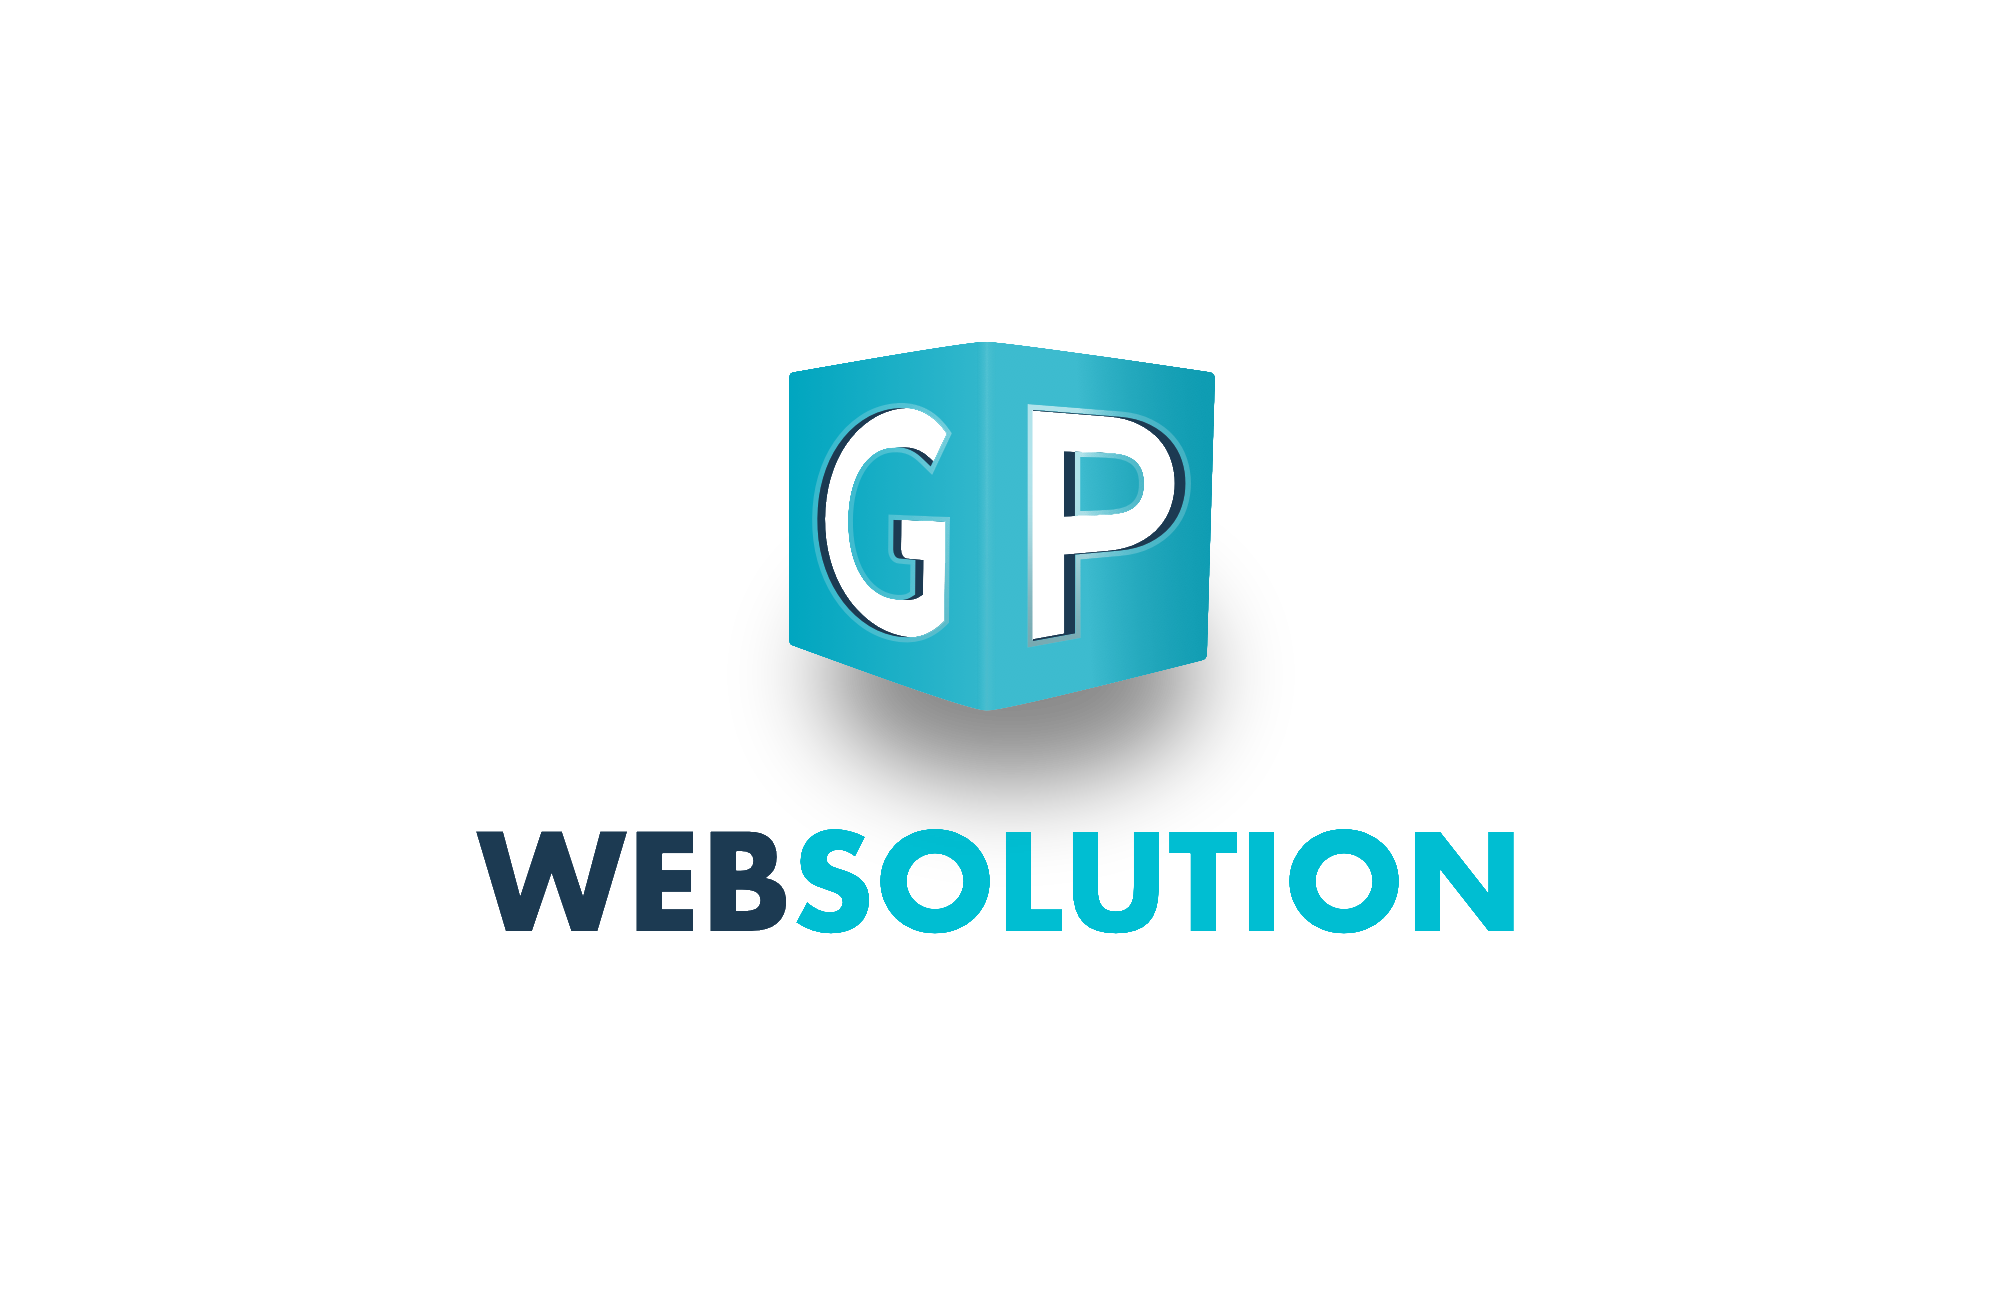 websolutionphil